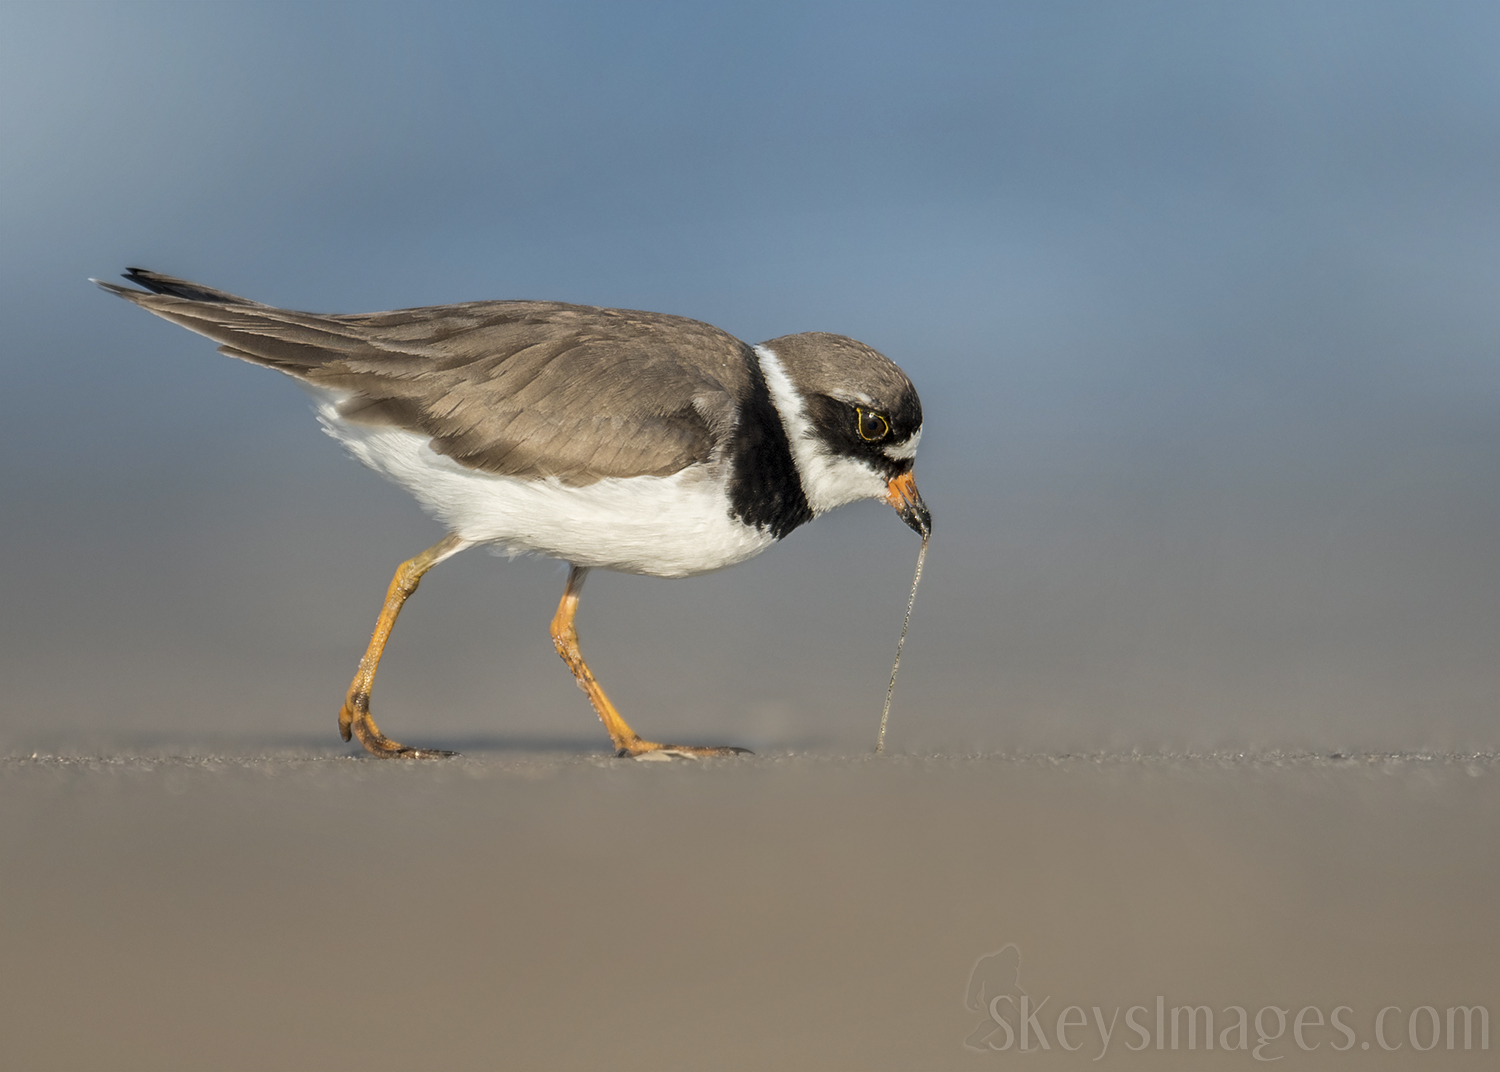 At this low angle, this Semi-palmated Plover really shows the action of pulling the worm from the sand. This persepctive feels intimate and gives a great sense of being close to whats happening. It also allows the elongated worm to show better.